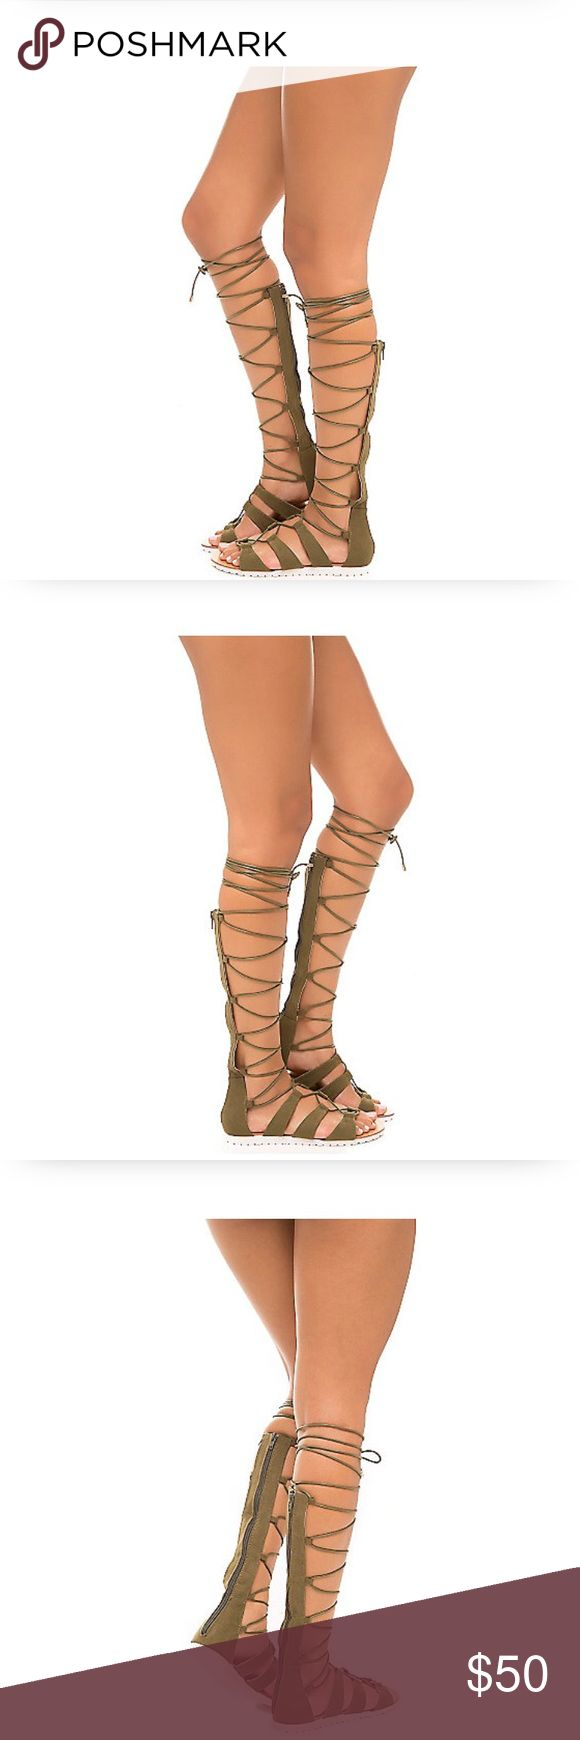 🎈COMING SOON🎈 Woman's Gladiator Sandals NWT----RUNS HALF SIZE SMALLER Shoes Sandals